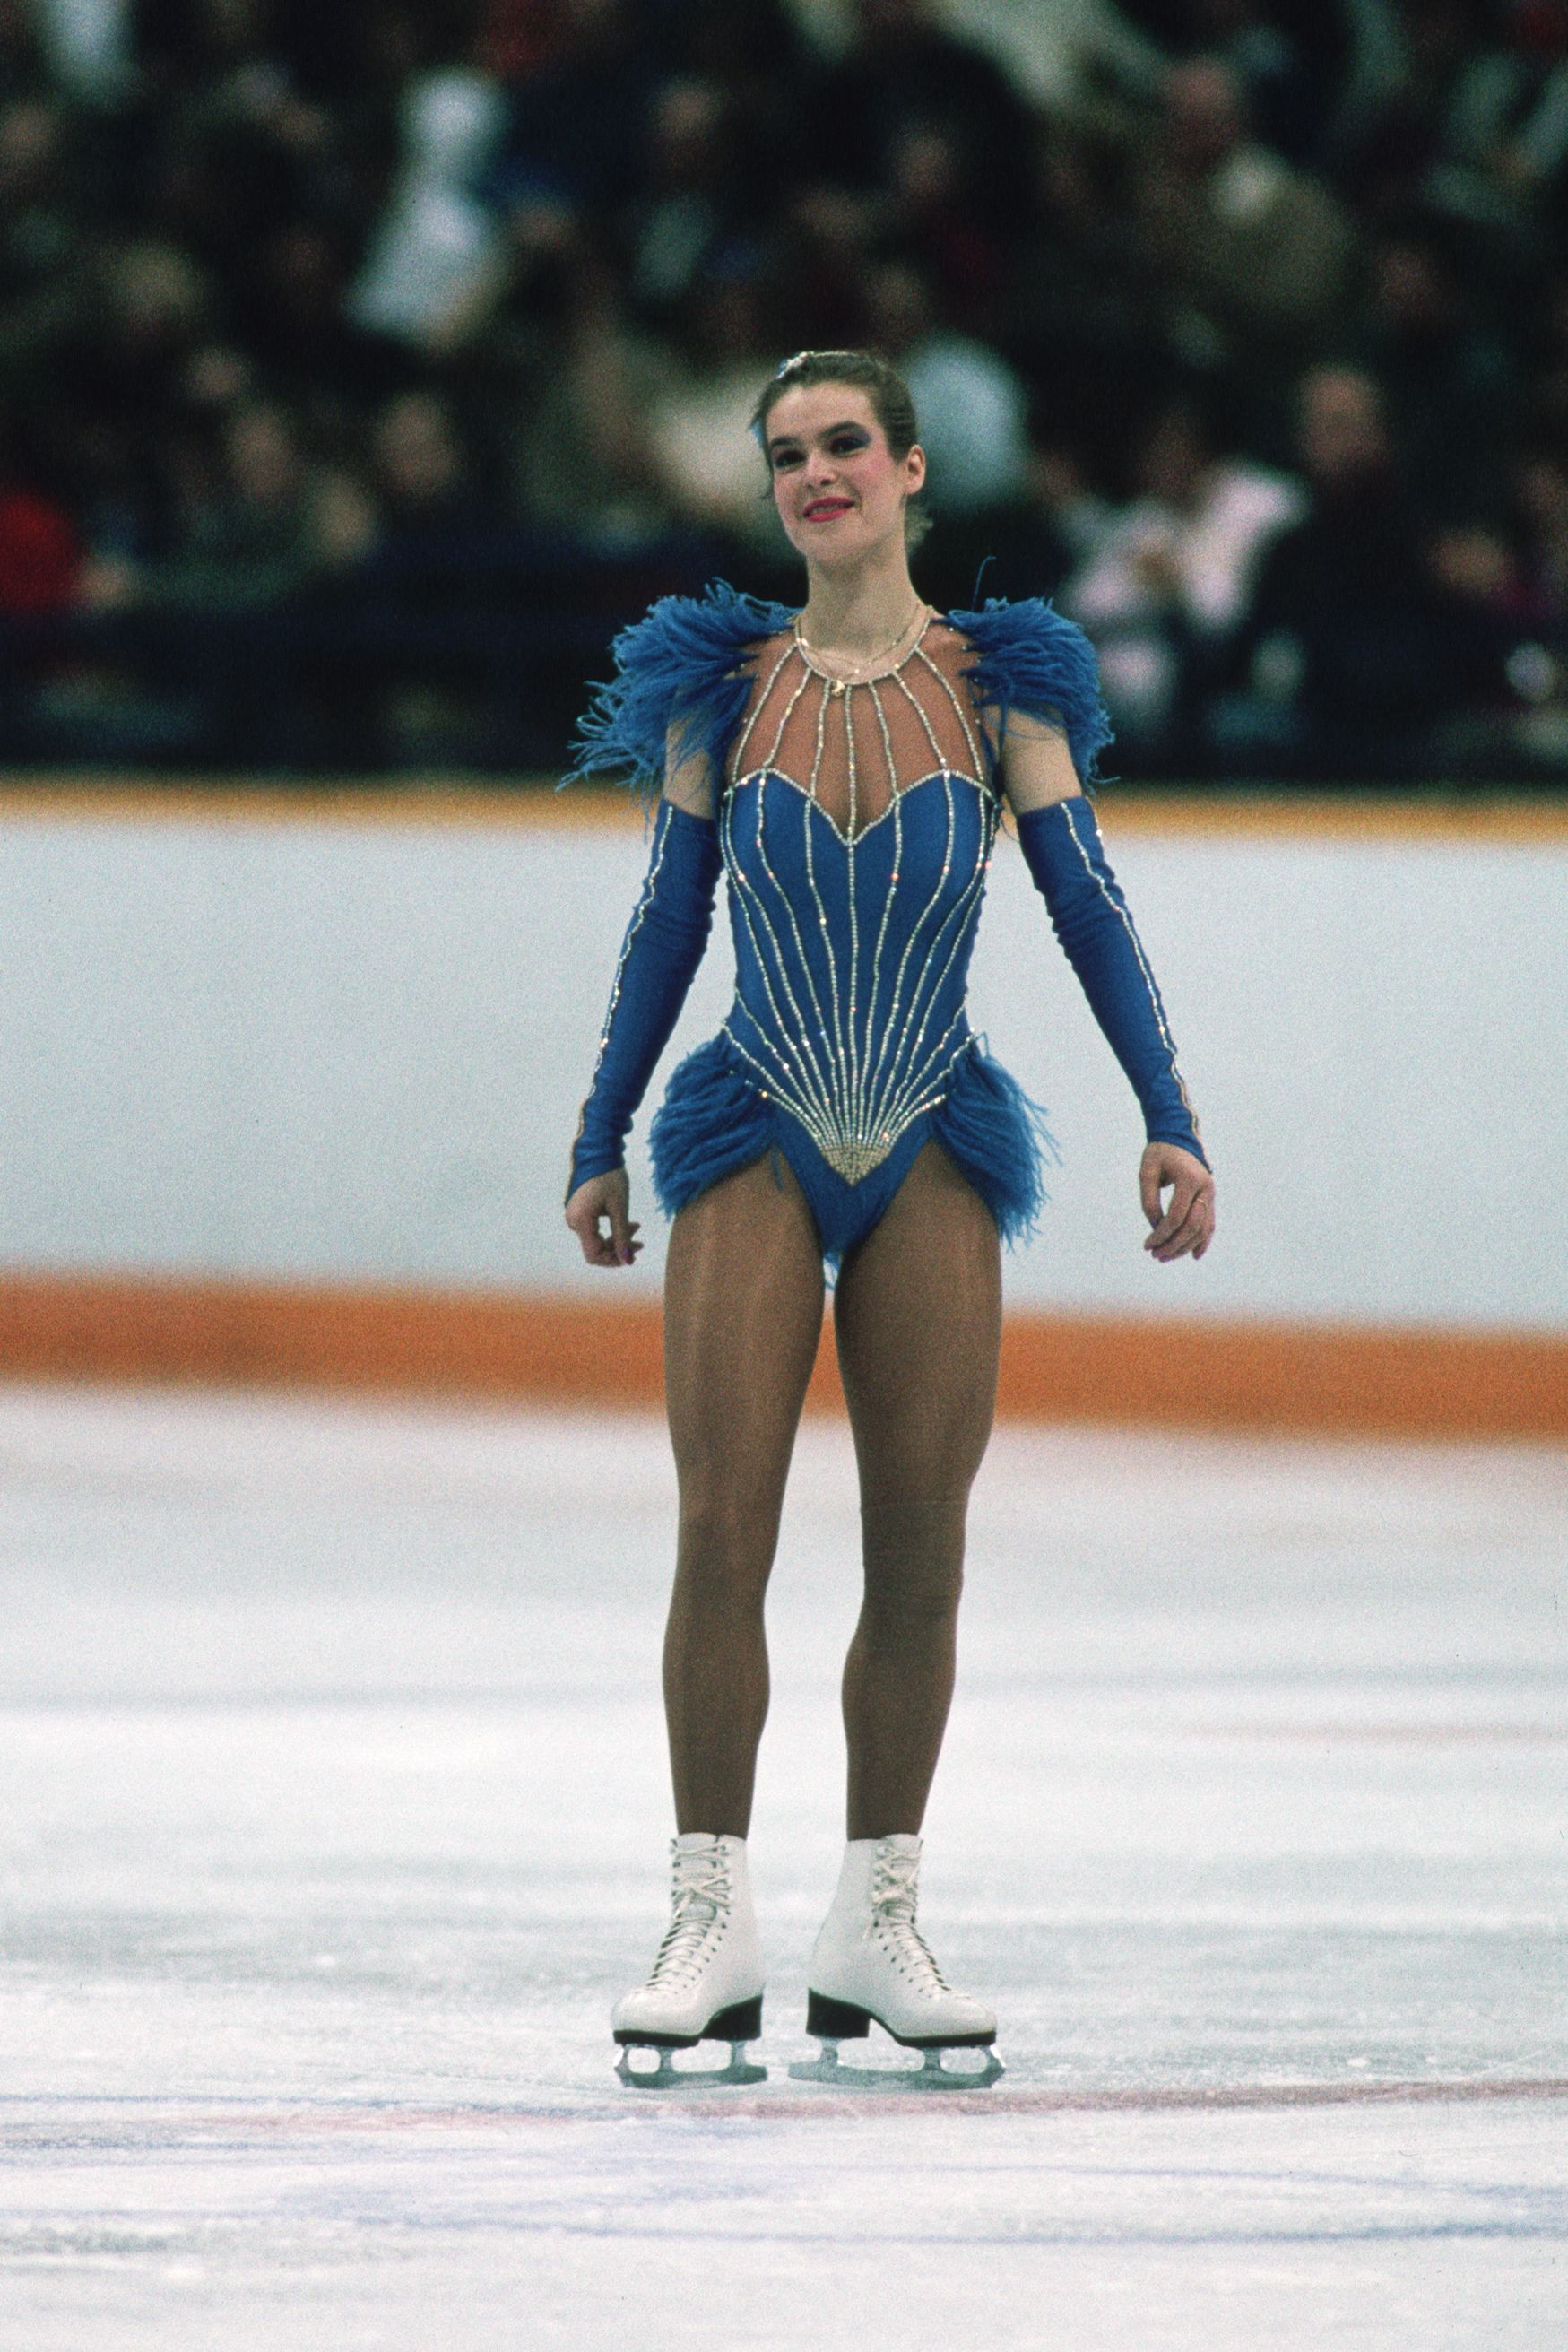 The 30 Most Memorable Olympic Uniforms to Ever Appear in the